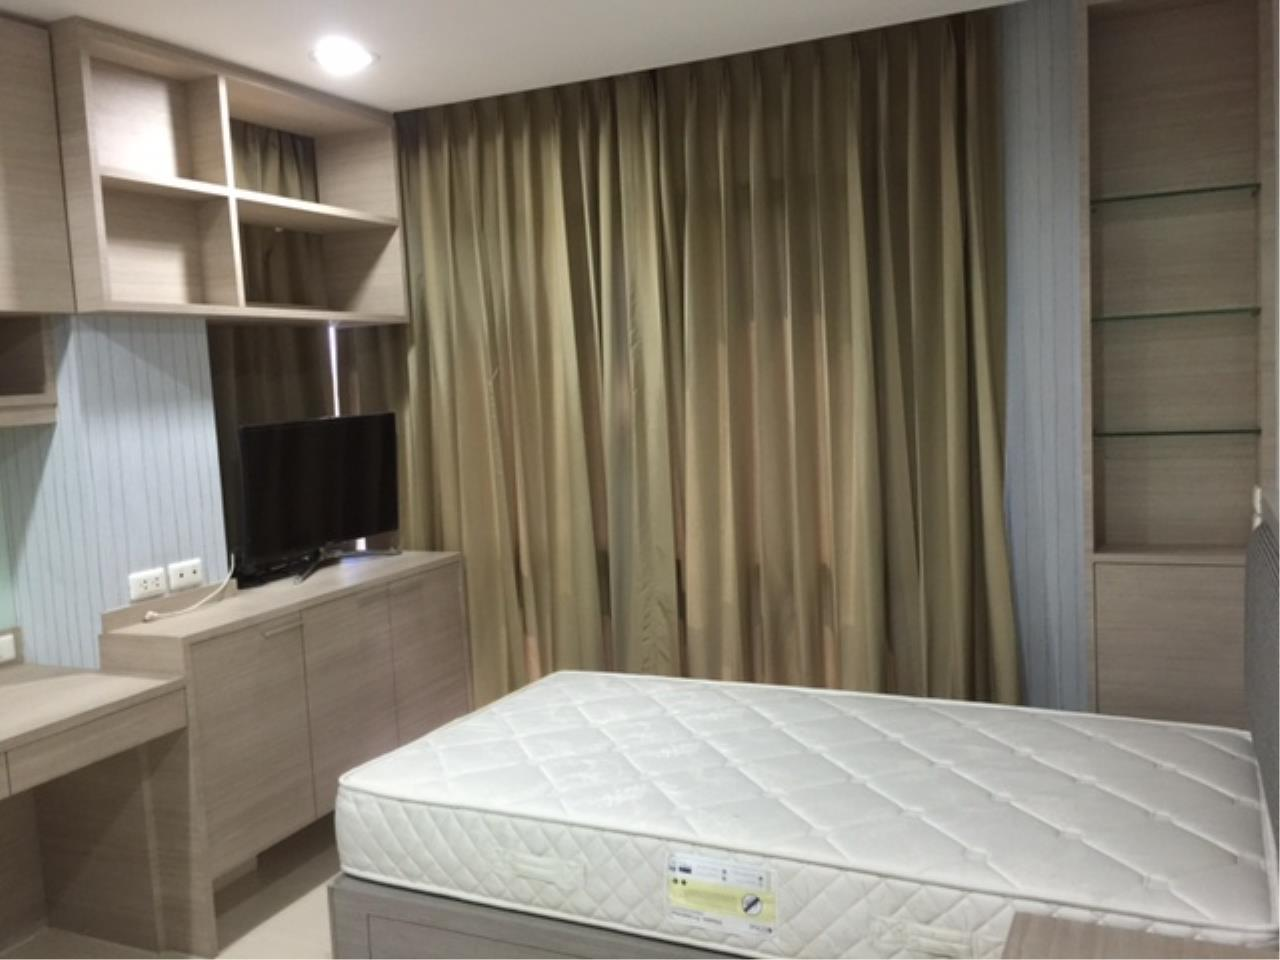 Piri Property Agency's 2 bedrooms Condominium  on 8 (Phase1) floor For Rent 2 8